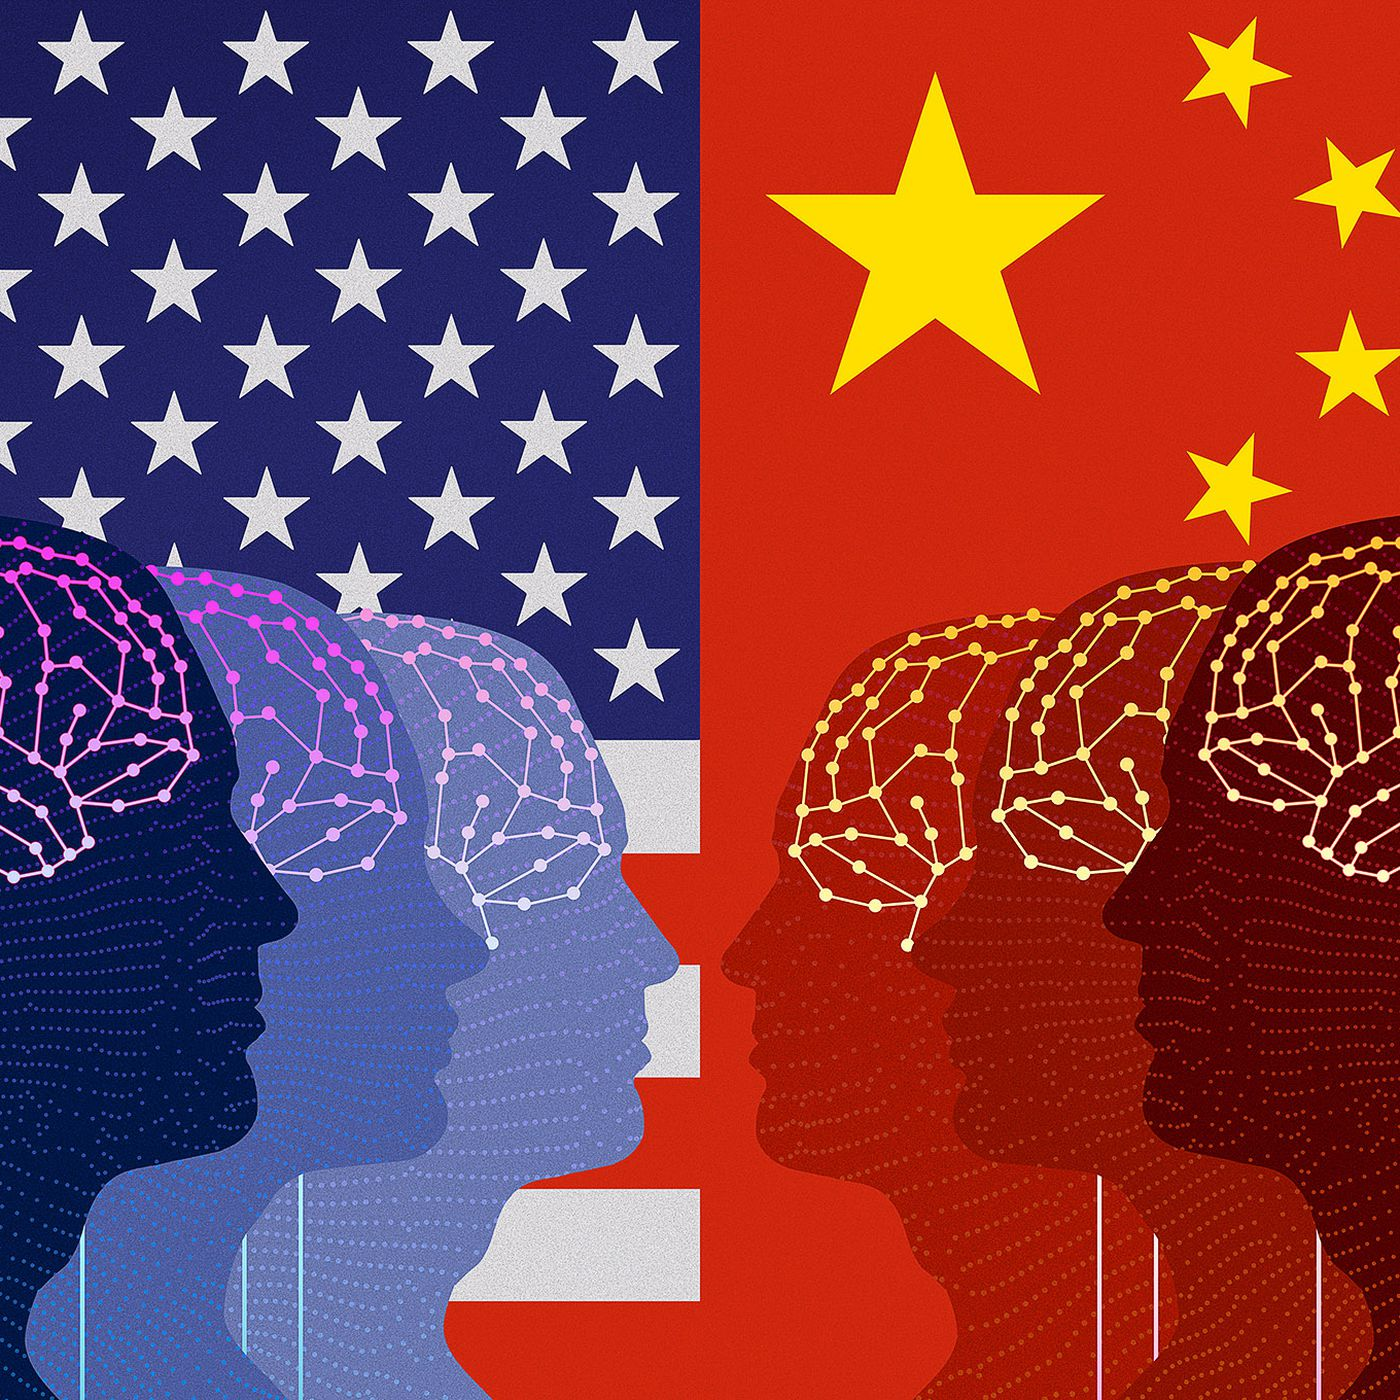 theverge.com - James Vincent - China is about to overtake America in AI research